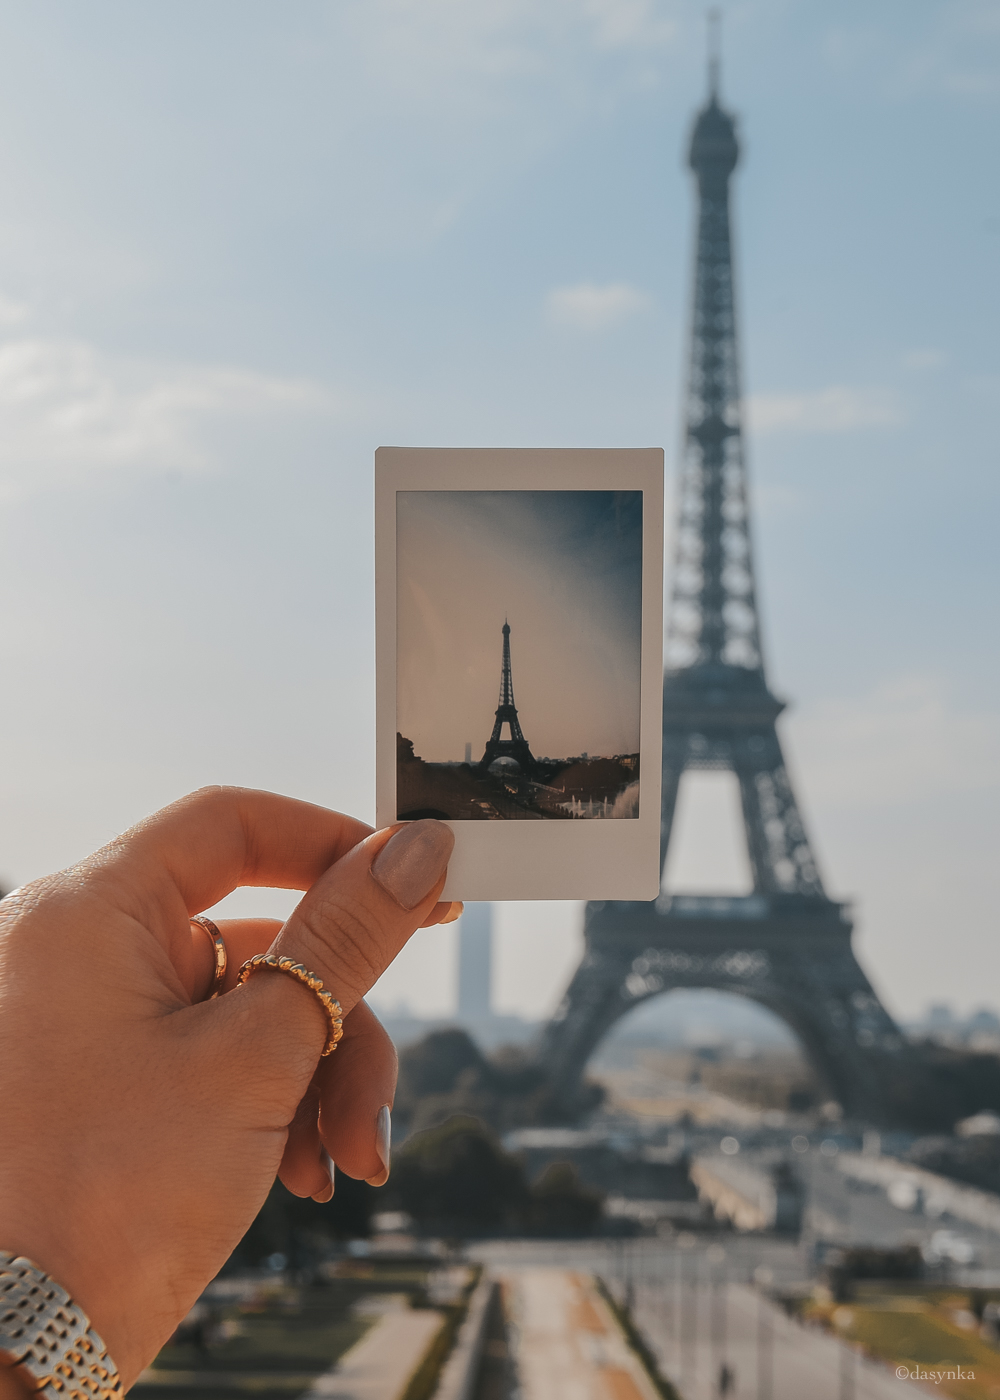 dasynka-fashion-blog-blogger-influencer-inspiration-shooting-globettrotter-travel-traveller-instagram-lifestyle-italy-ideas-italian-polaroids-polaroid-fujifilm-instax-90-8-worldmap-planisfero-mappa-mondo-pin-memories-photographs-vintage-print-paris-tour-eiffel